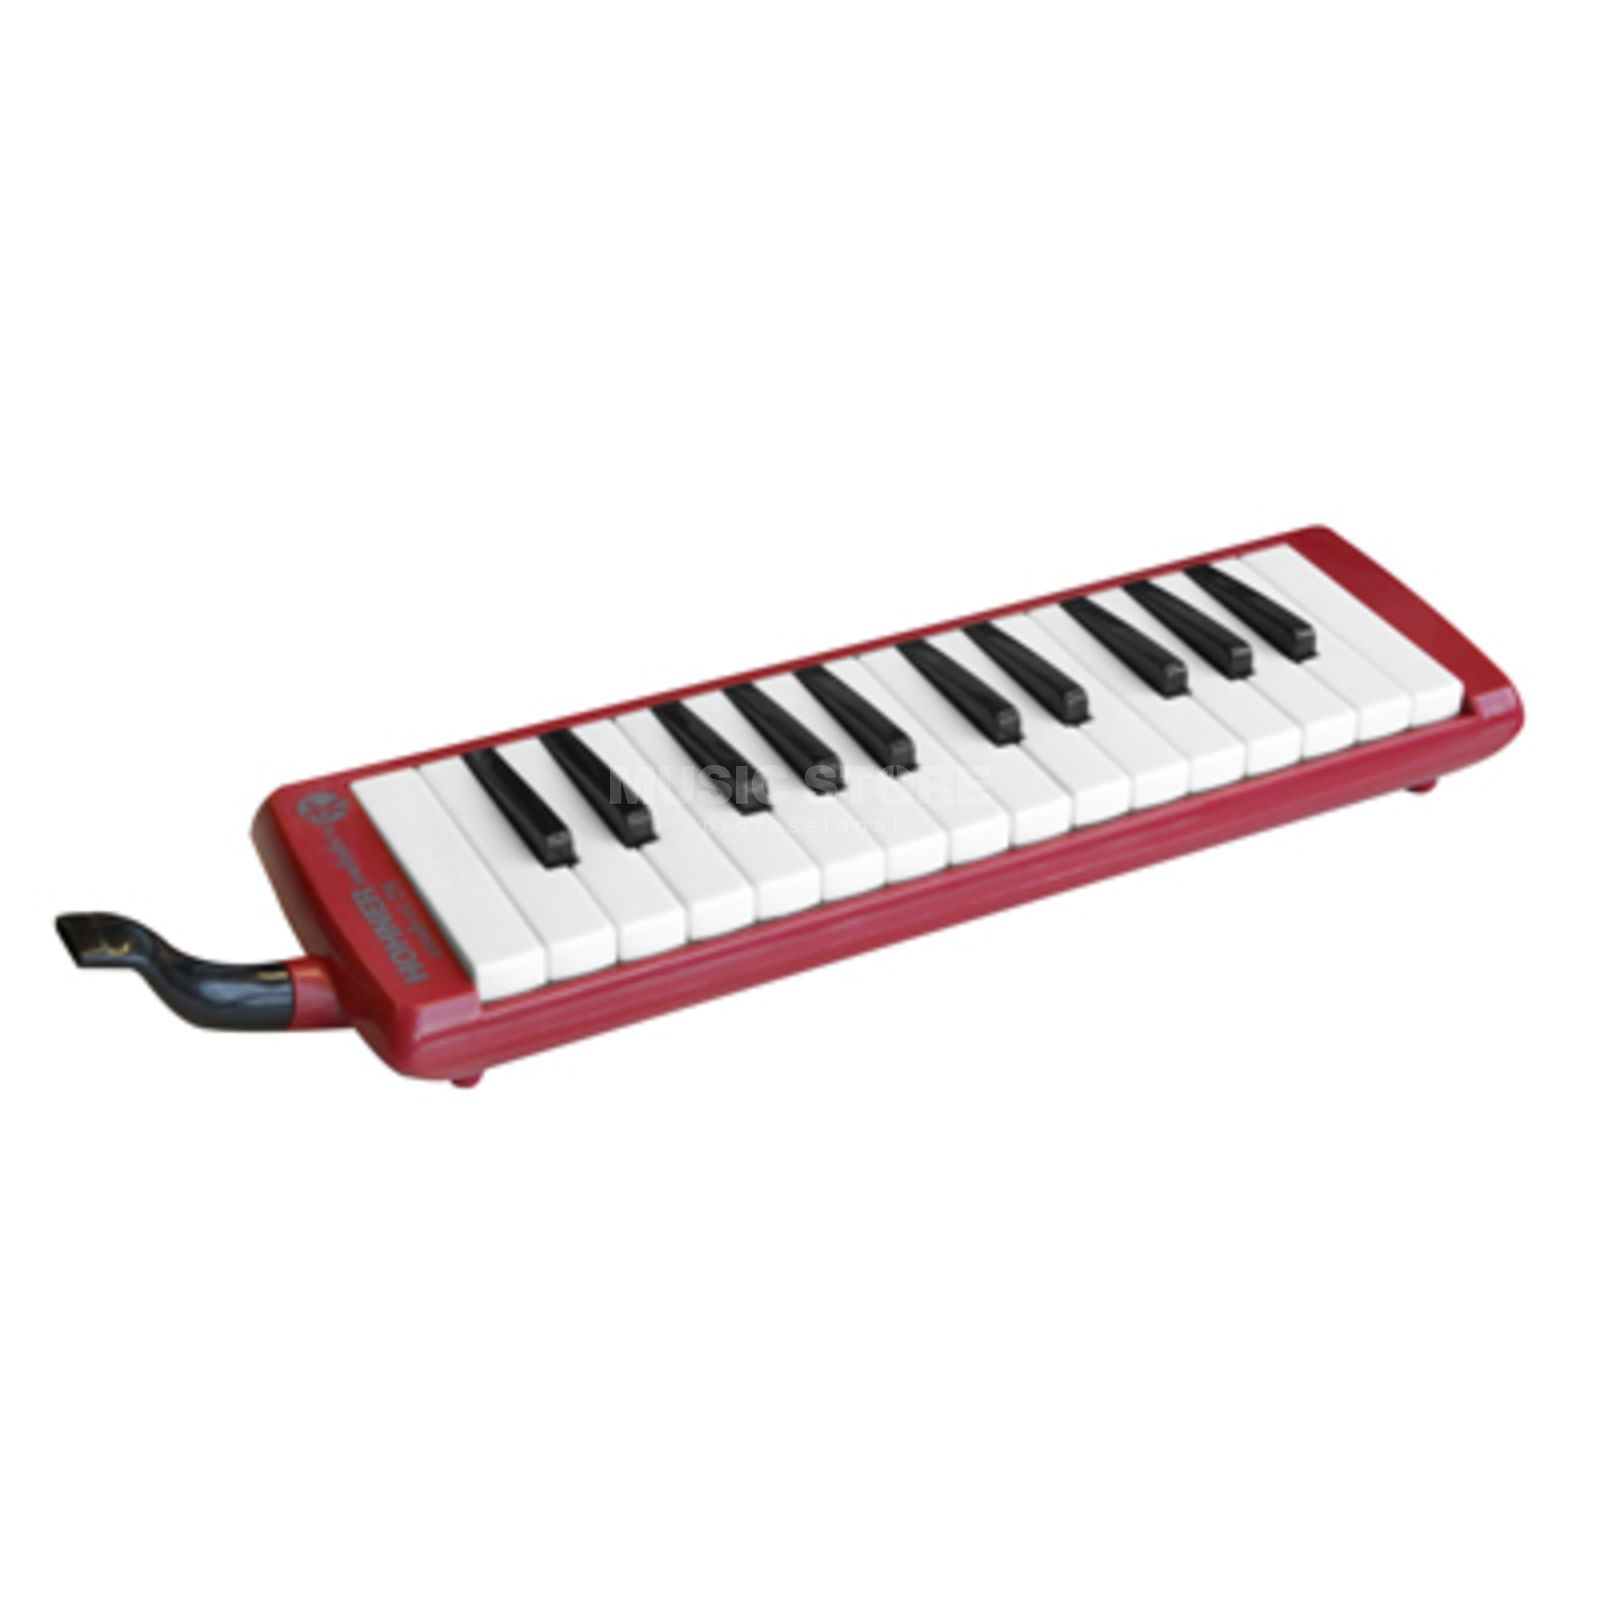 Hohner Studet Melodica 26 rood incl. Etui en accessoires Productafbeelding